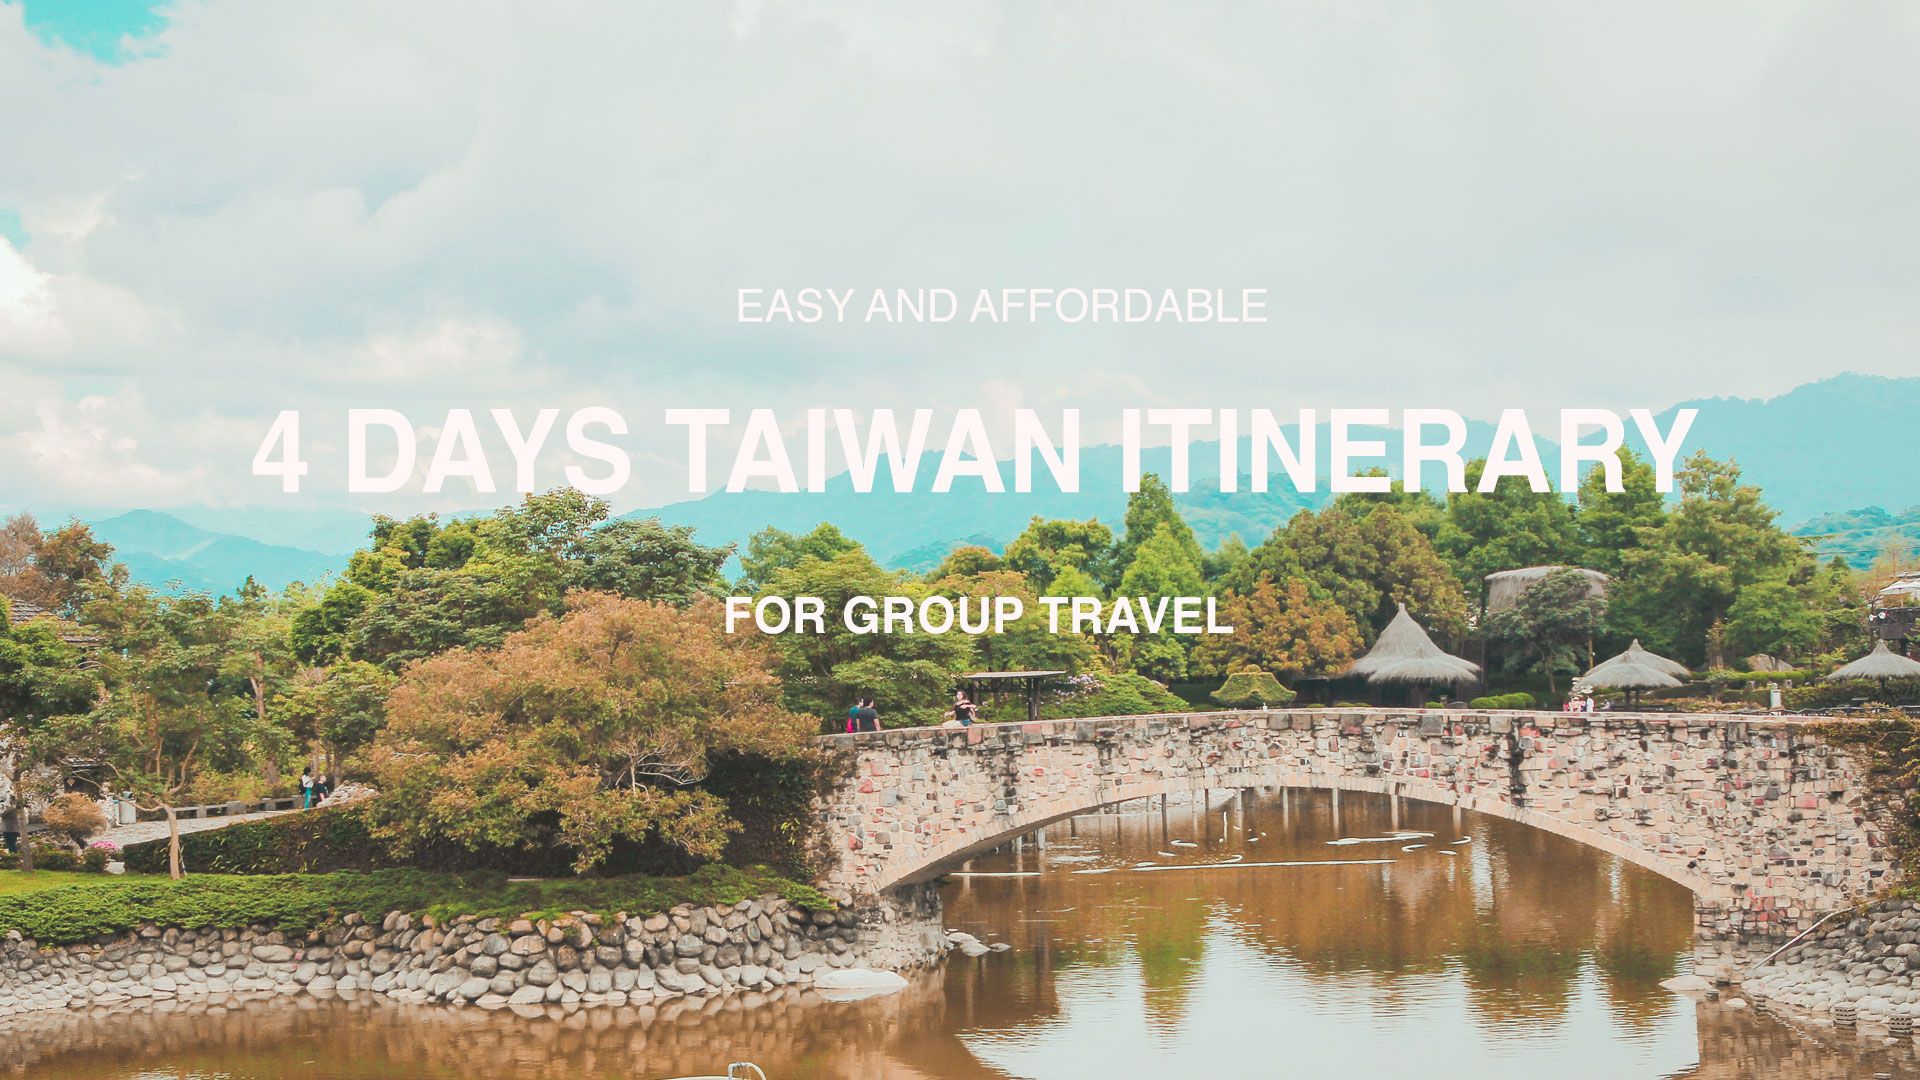 Easy and Affordable 4 Days Taiwan Itinerary for Group Travel